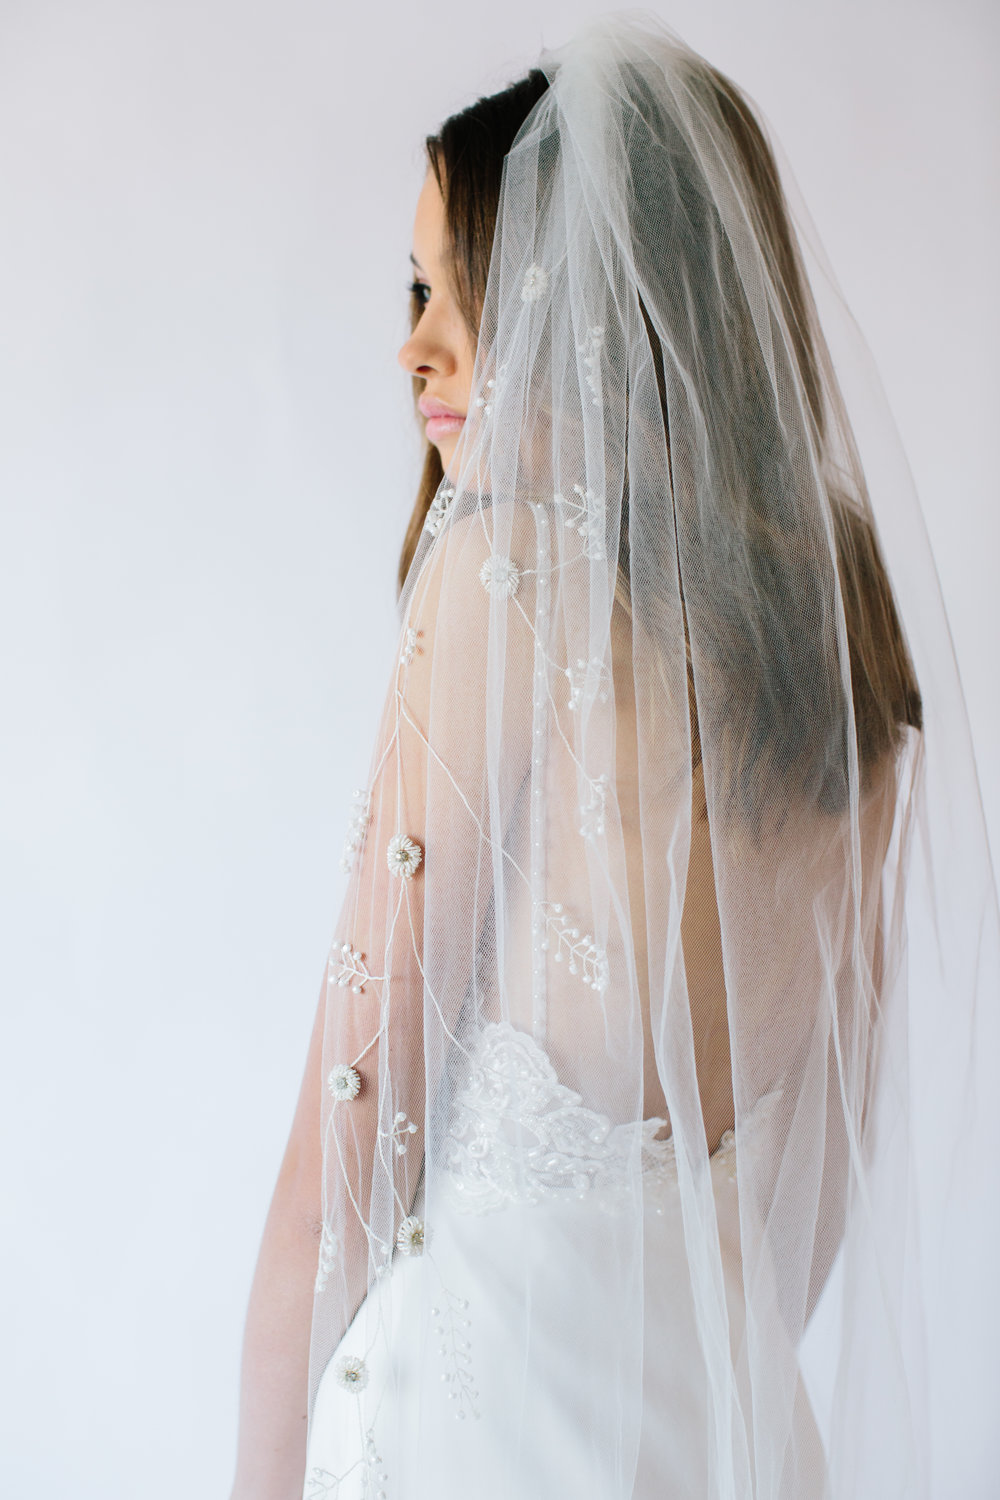 Ellis Veil   Details- One tier cathedral length veil with ivory hand beaded floral detailing  Full Beading - Cathedral $1,358  Half Beading (starting at Fingertips) - Cathedral $898